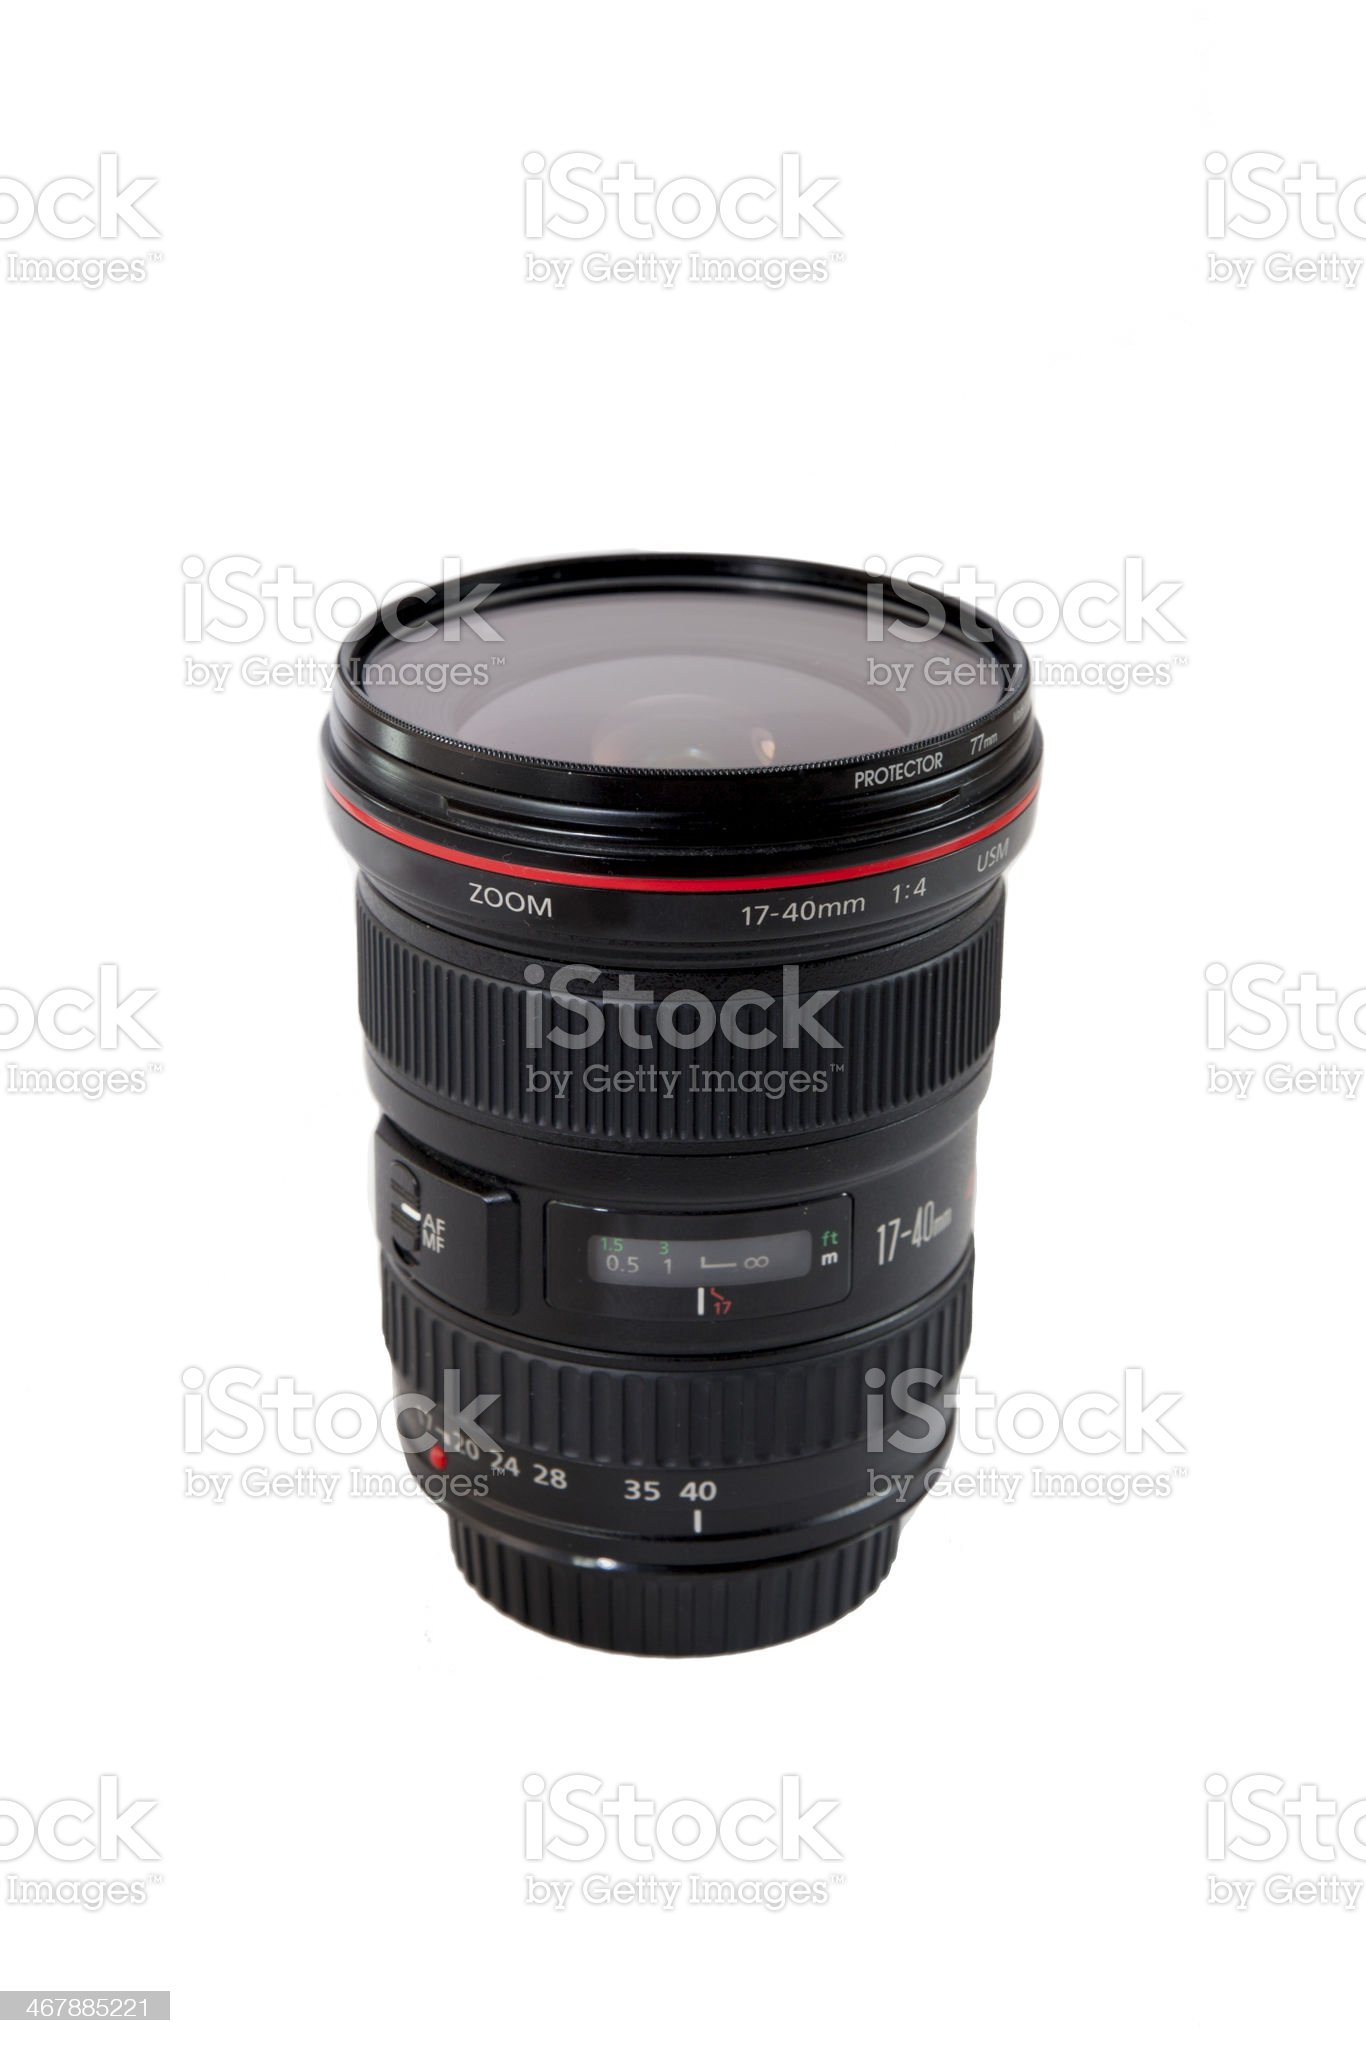 Wide angle lens royalty-free stock photo